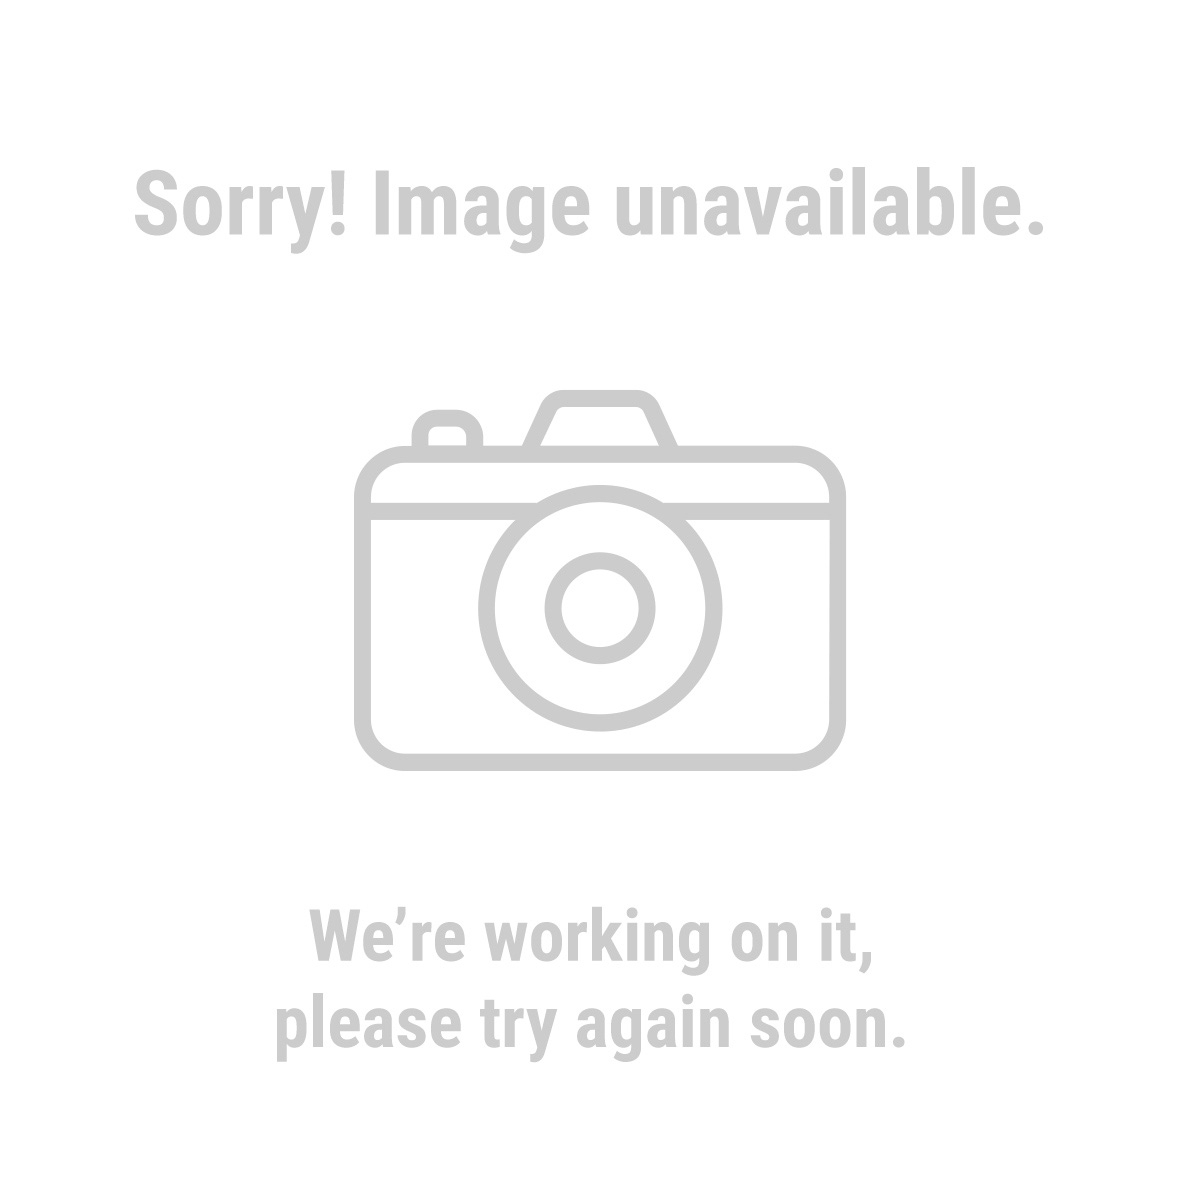 Drill Master 62874 18 Volt 1/4 in. Cordless Impact Driver